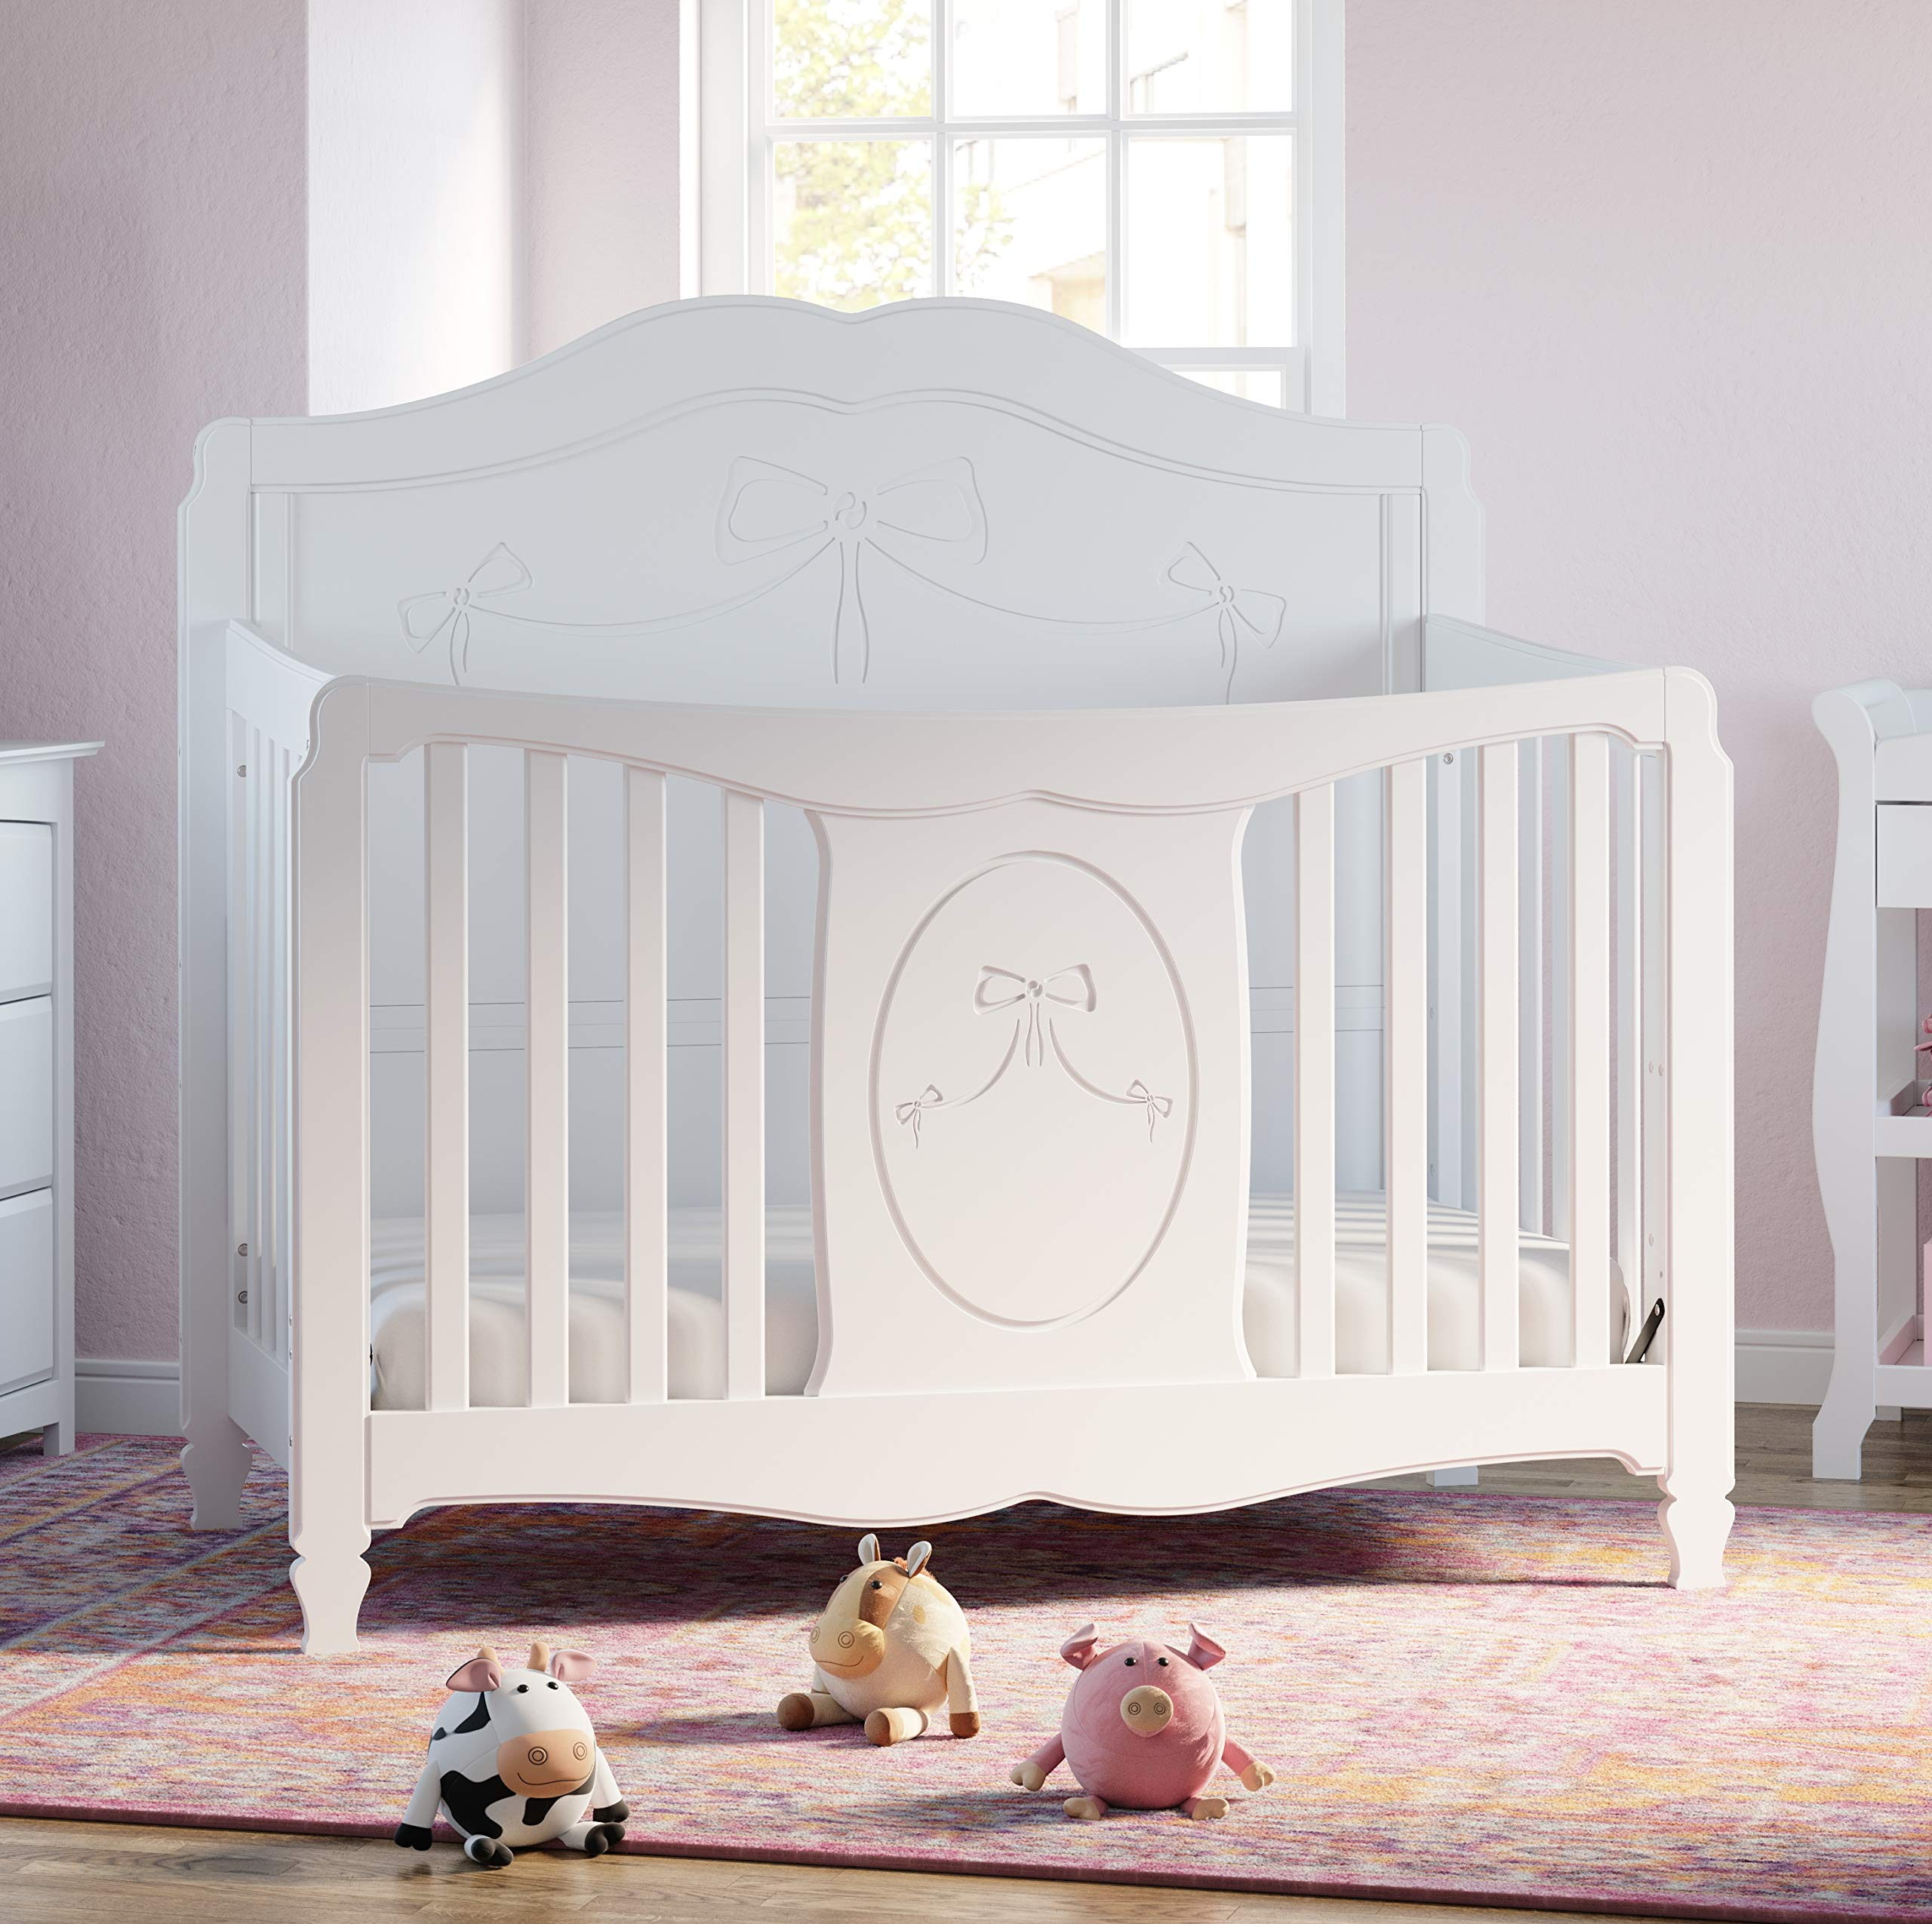 Storkcraft Princess 4-in-1 Fixed Side Convertible Crib, White Easily Converts to Toddler Bed, Day Bed or Full Bed, 3 Position Adjustable Height Mattress by Storkcraft